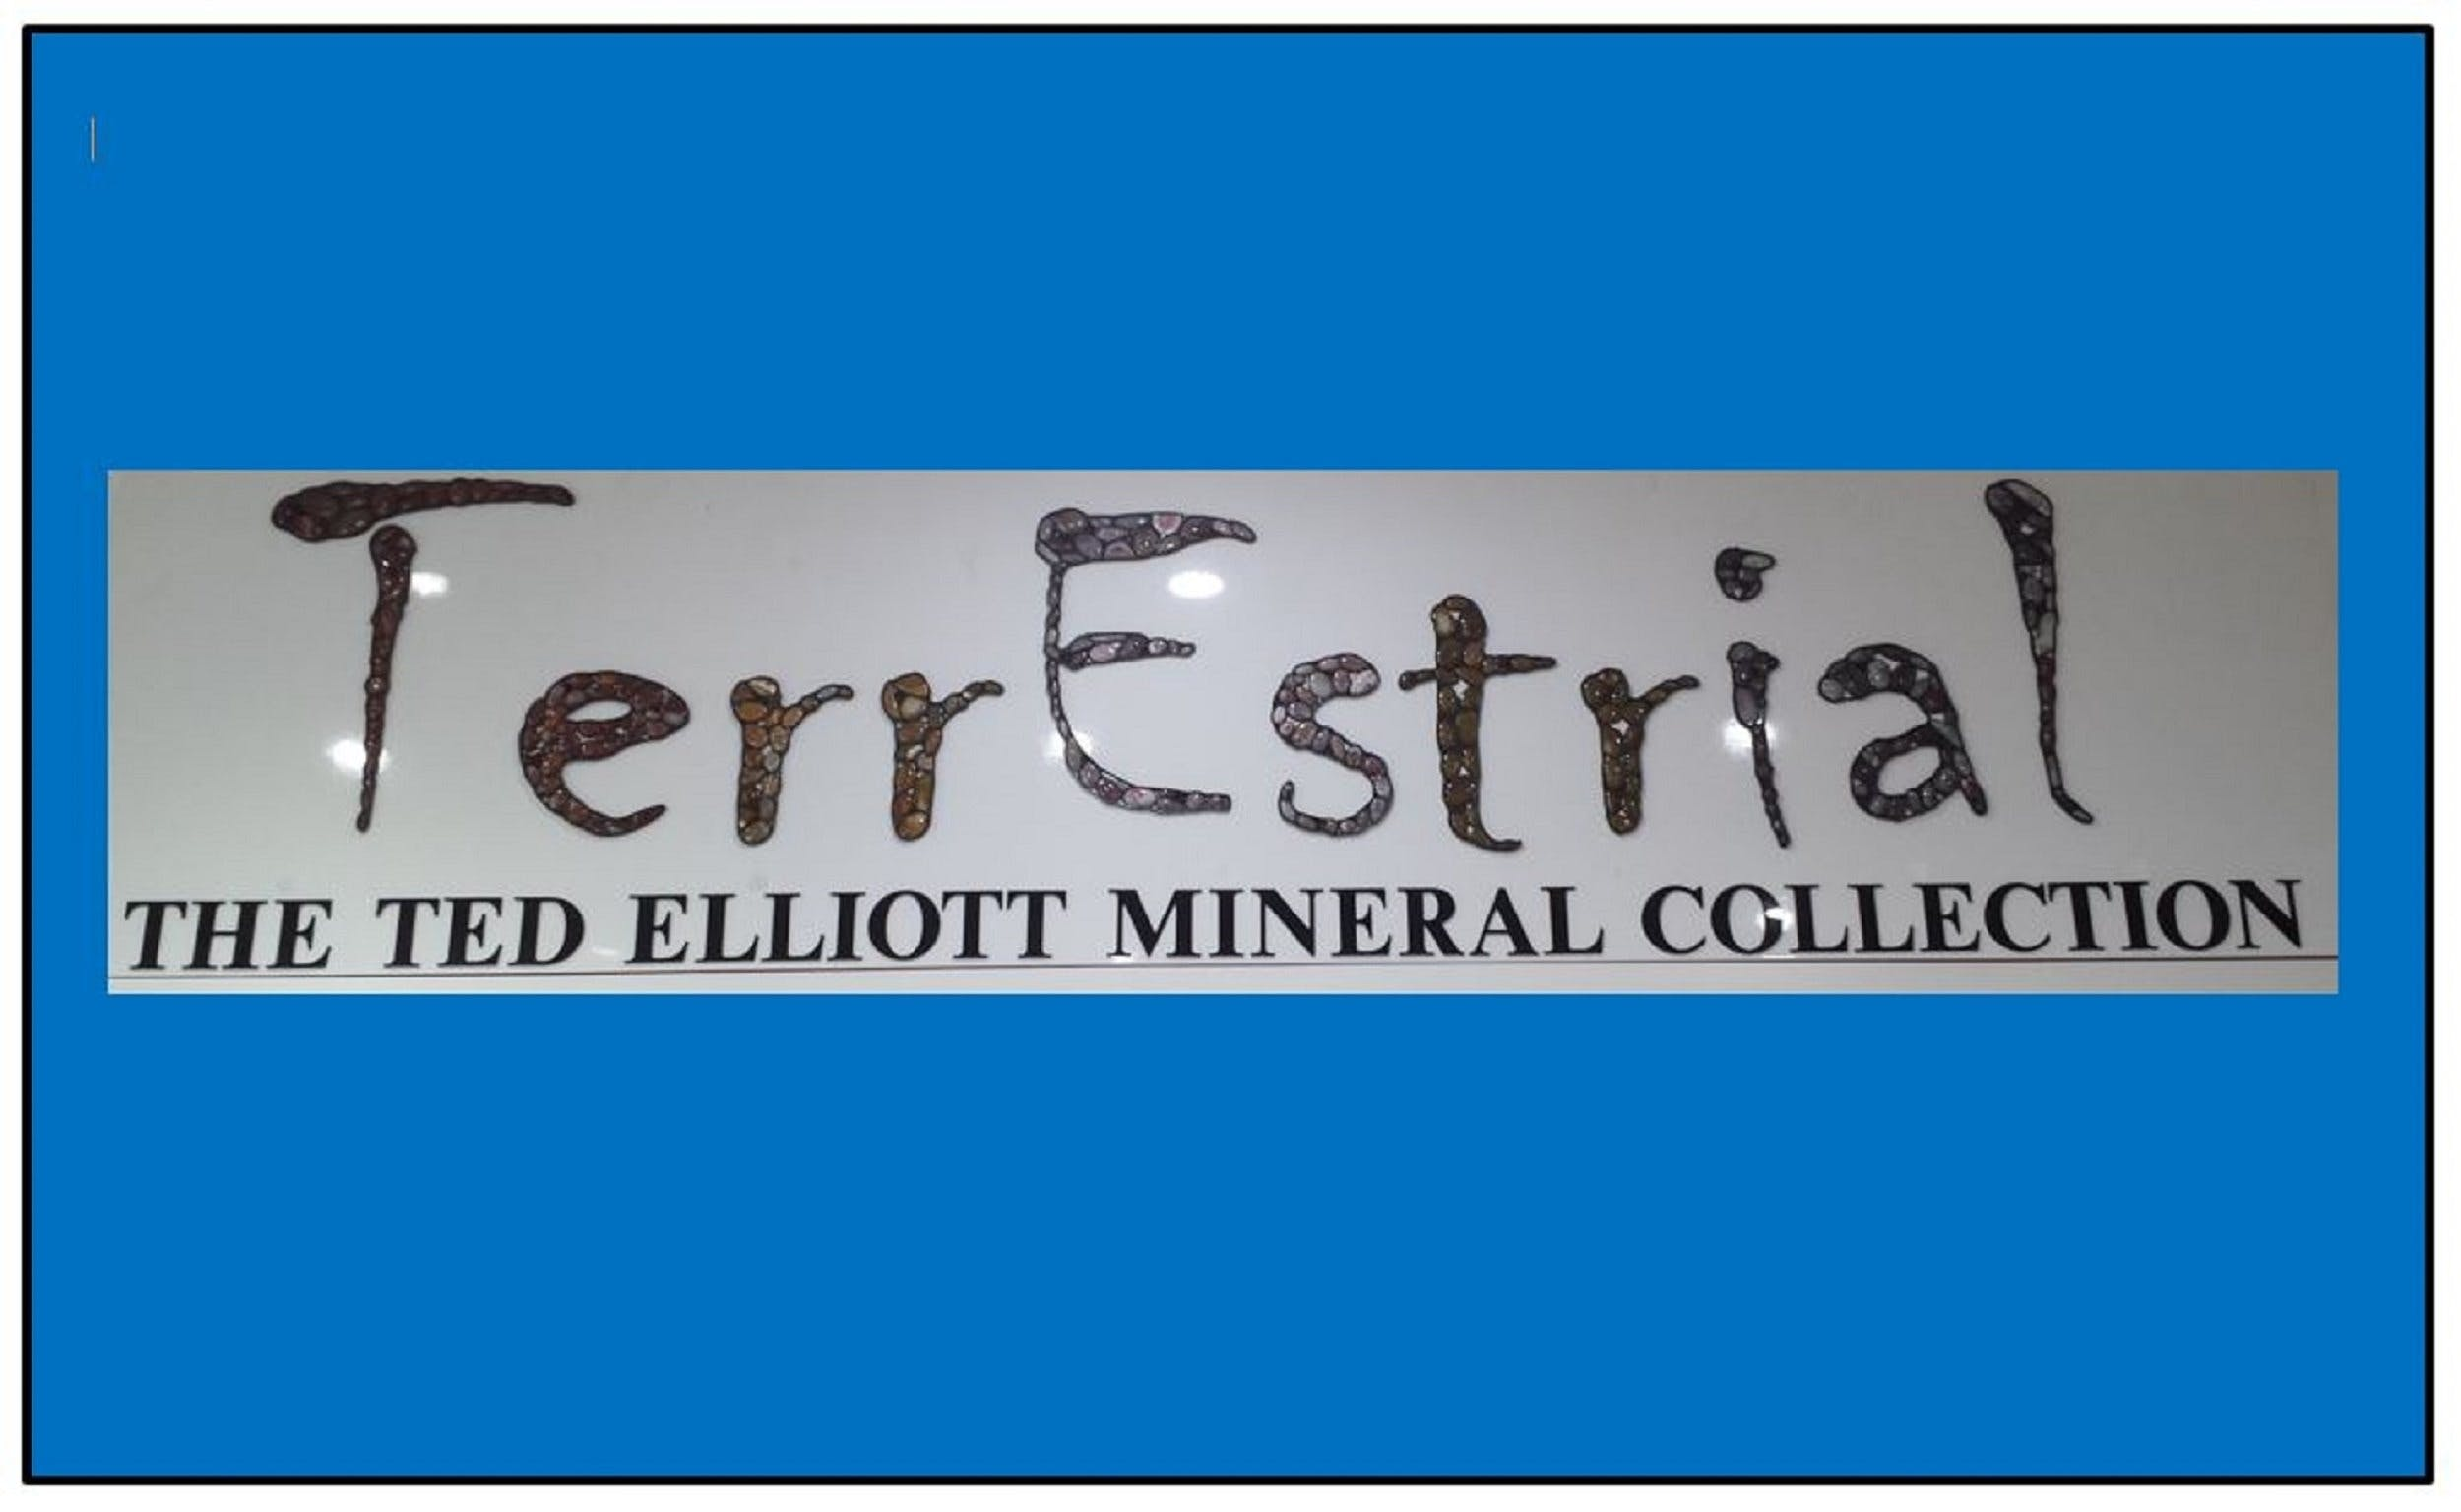 The Ted Elliott Mineral Collection - Attractions Brisbane